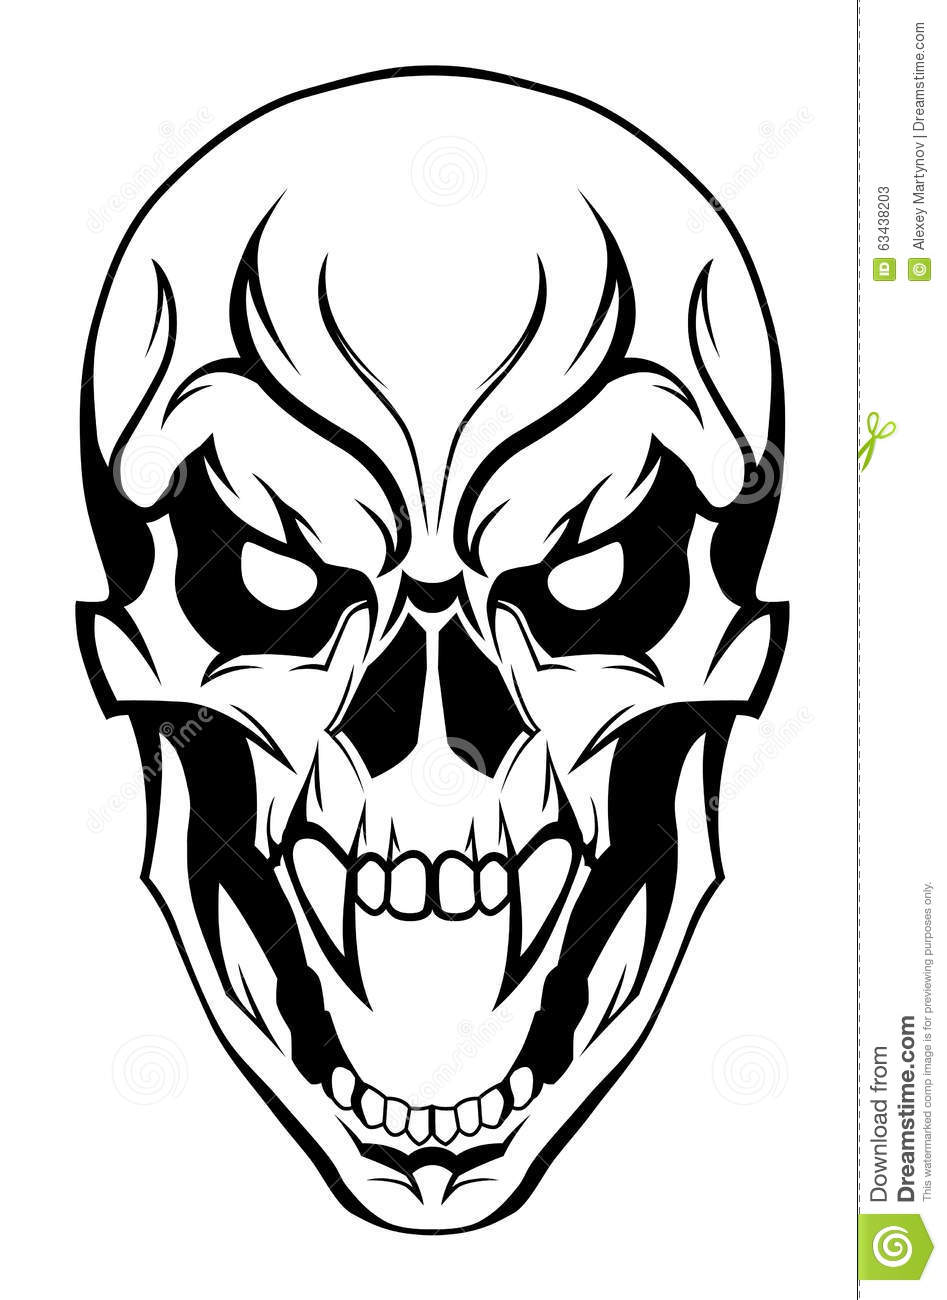 Evil Skull Cartoon Vector Cartoondealer Com 63438203